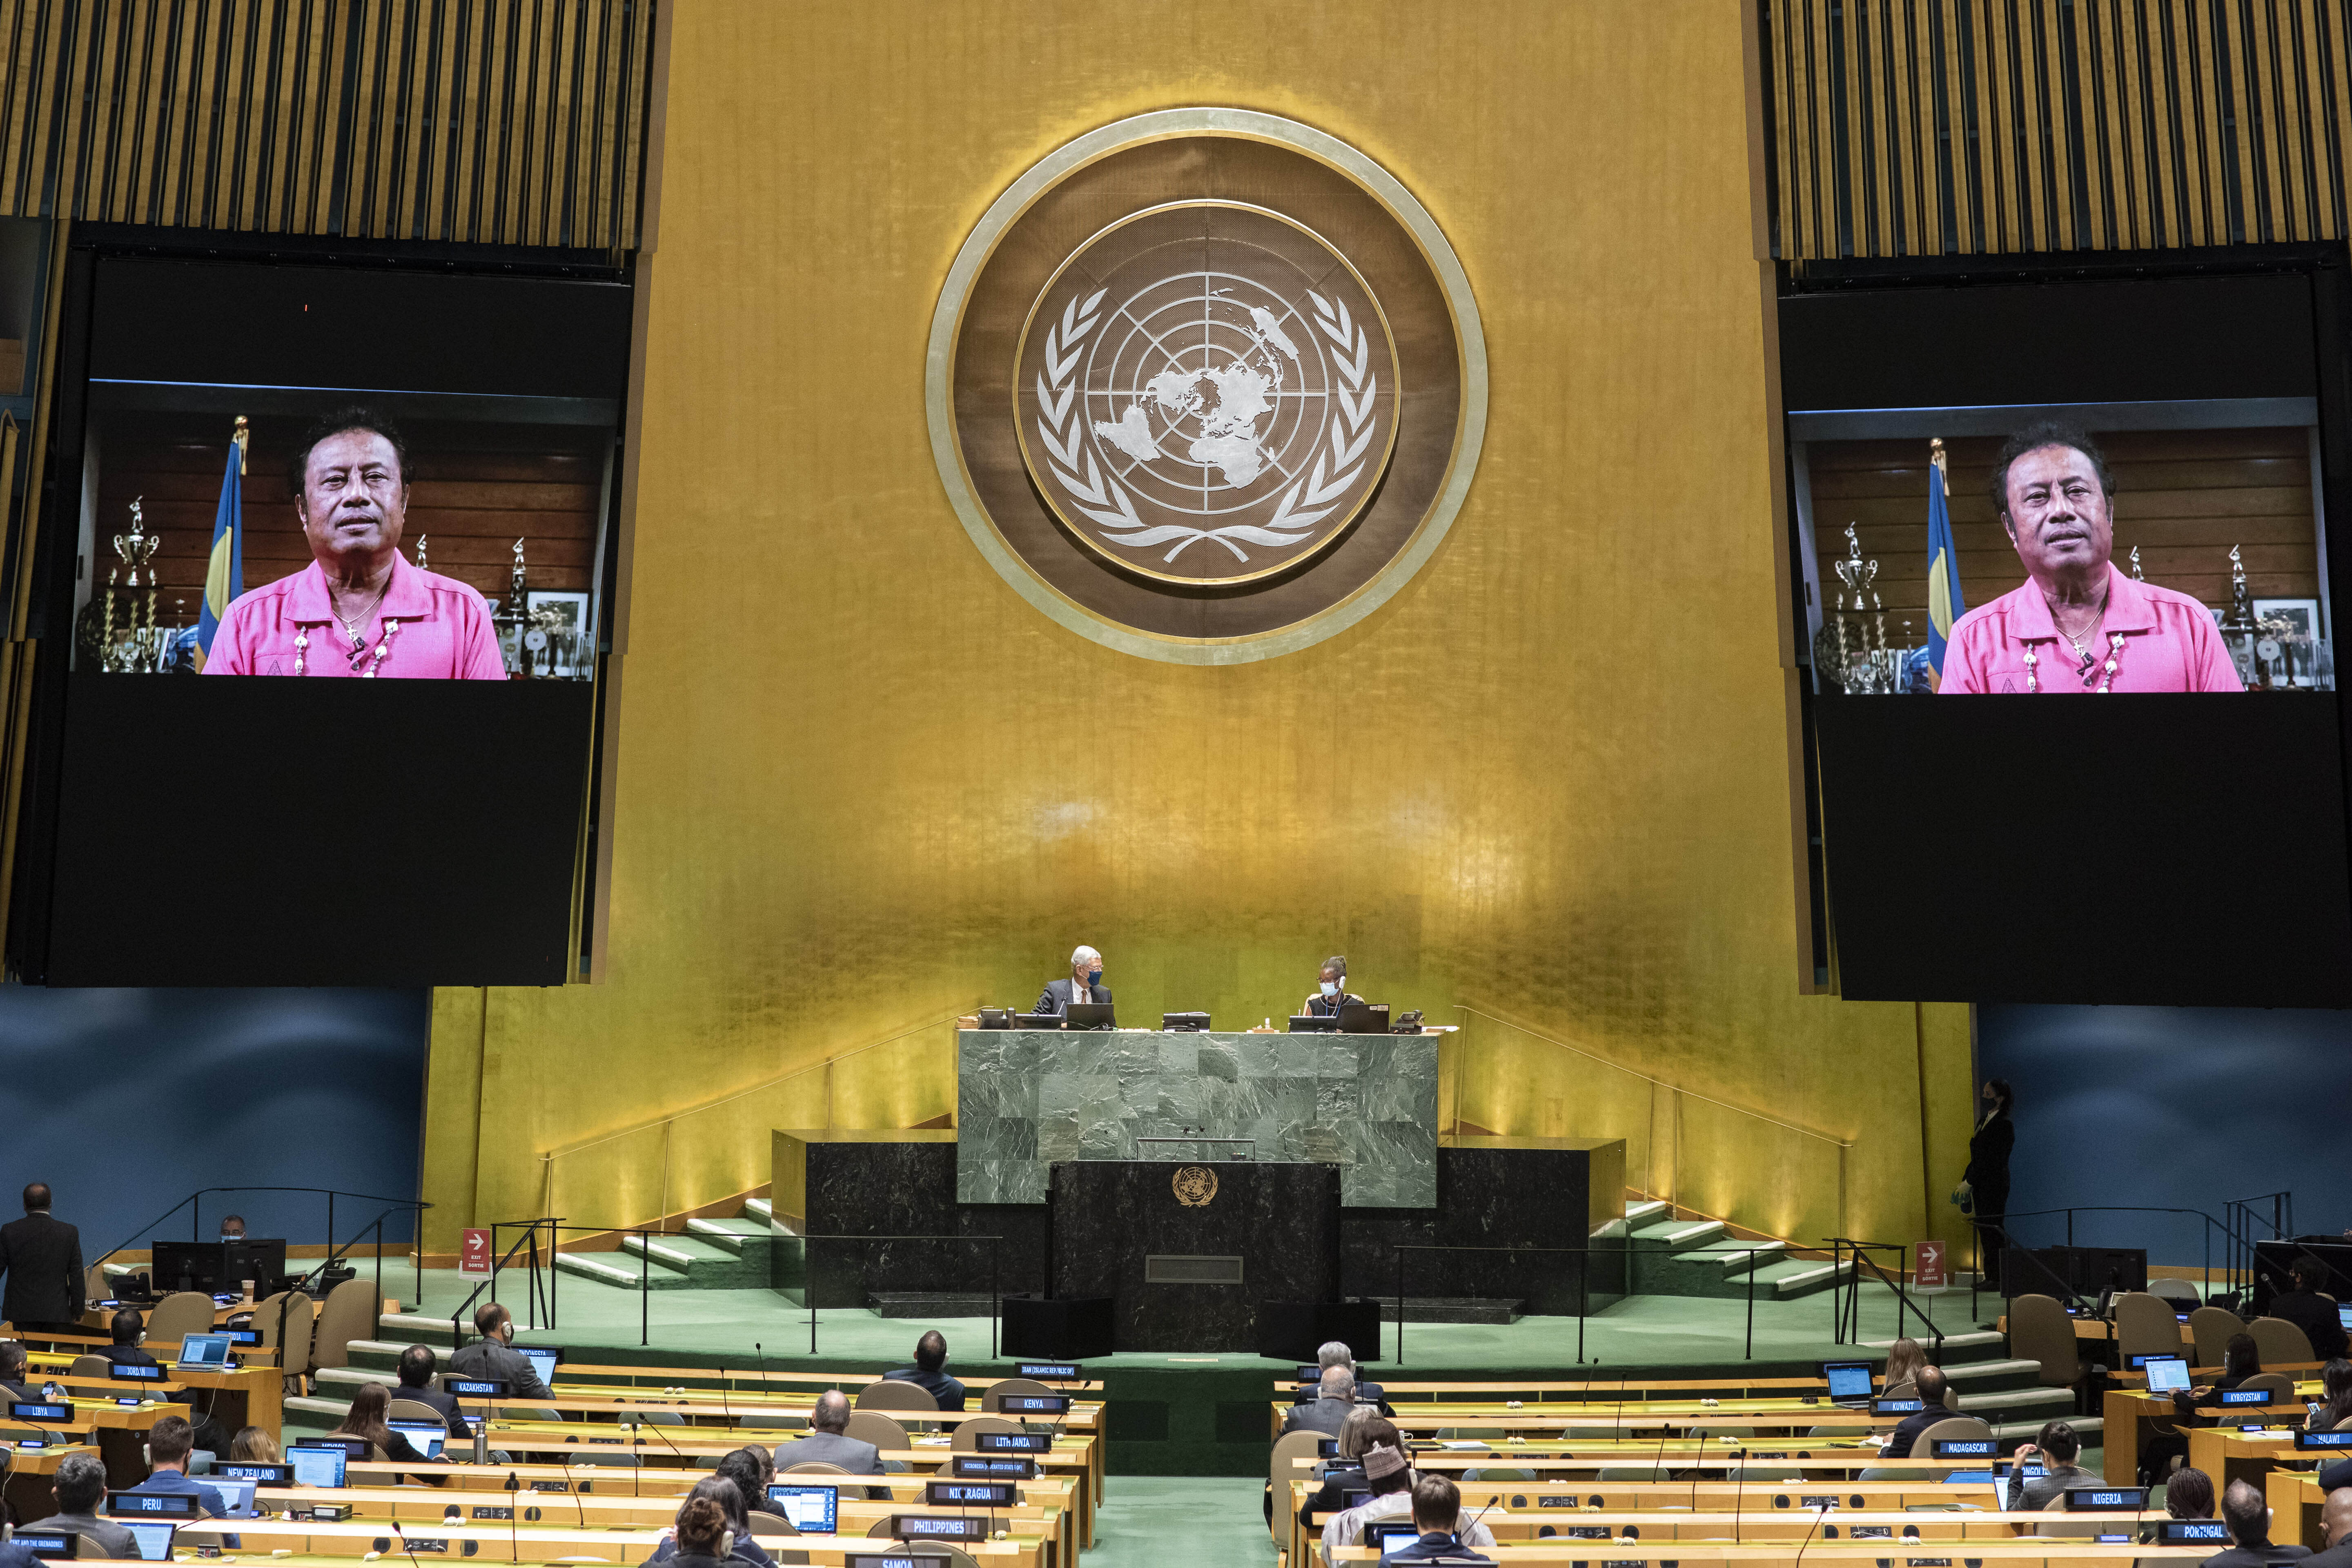 In this photo provided by the United Nations, the pre-recorded message of Tommy Esang Remengesau Jr., President of Palau, is played during the 75th session of the United Nations General Assembly, Wednesday Sept. 23, 2020, at U.N. headquarters, in New York. (Eskinder Debebe/UN Photo via AP)